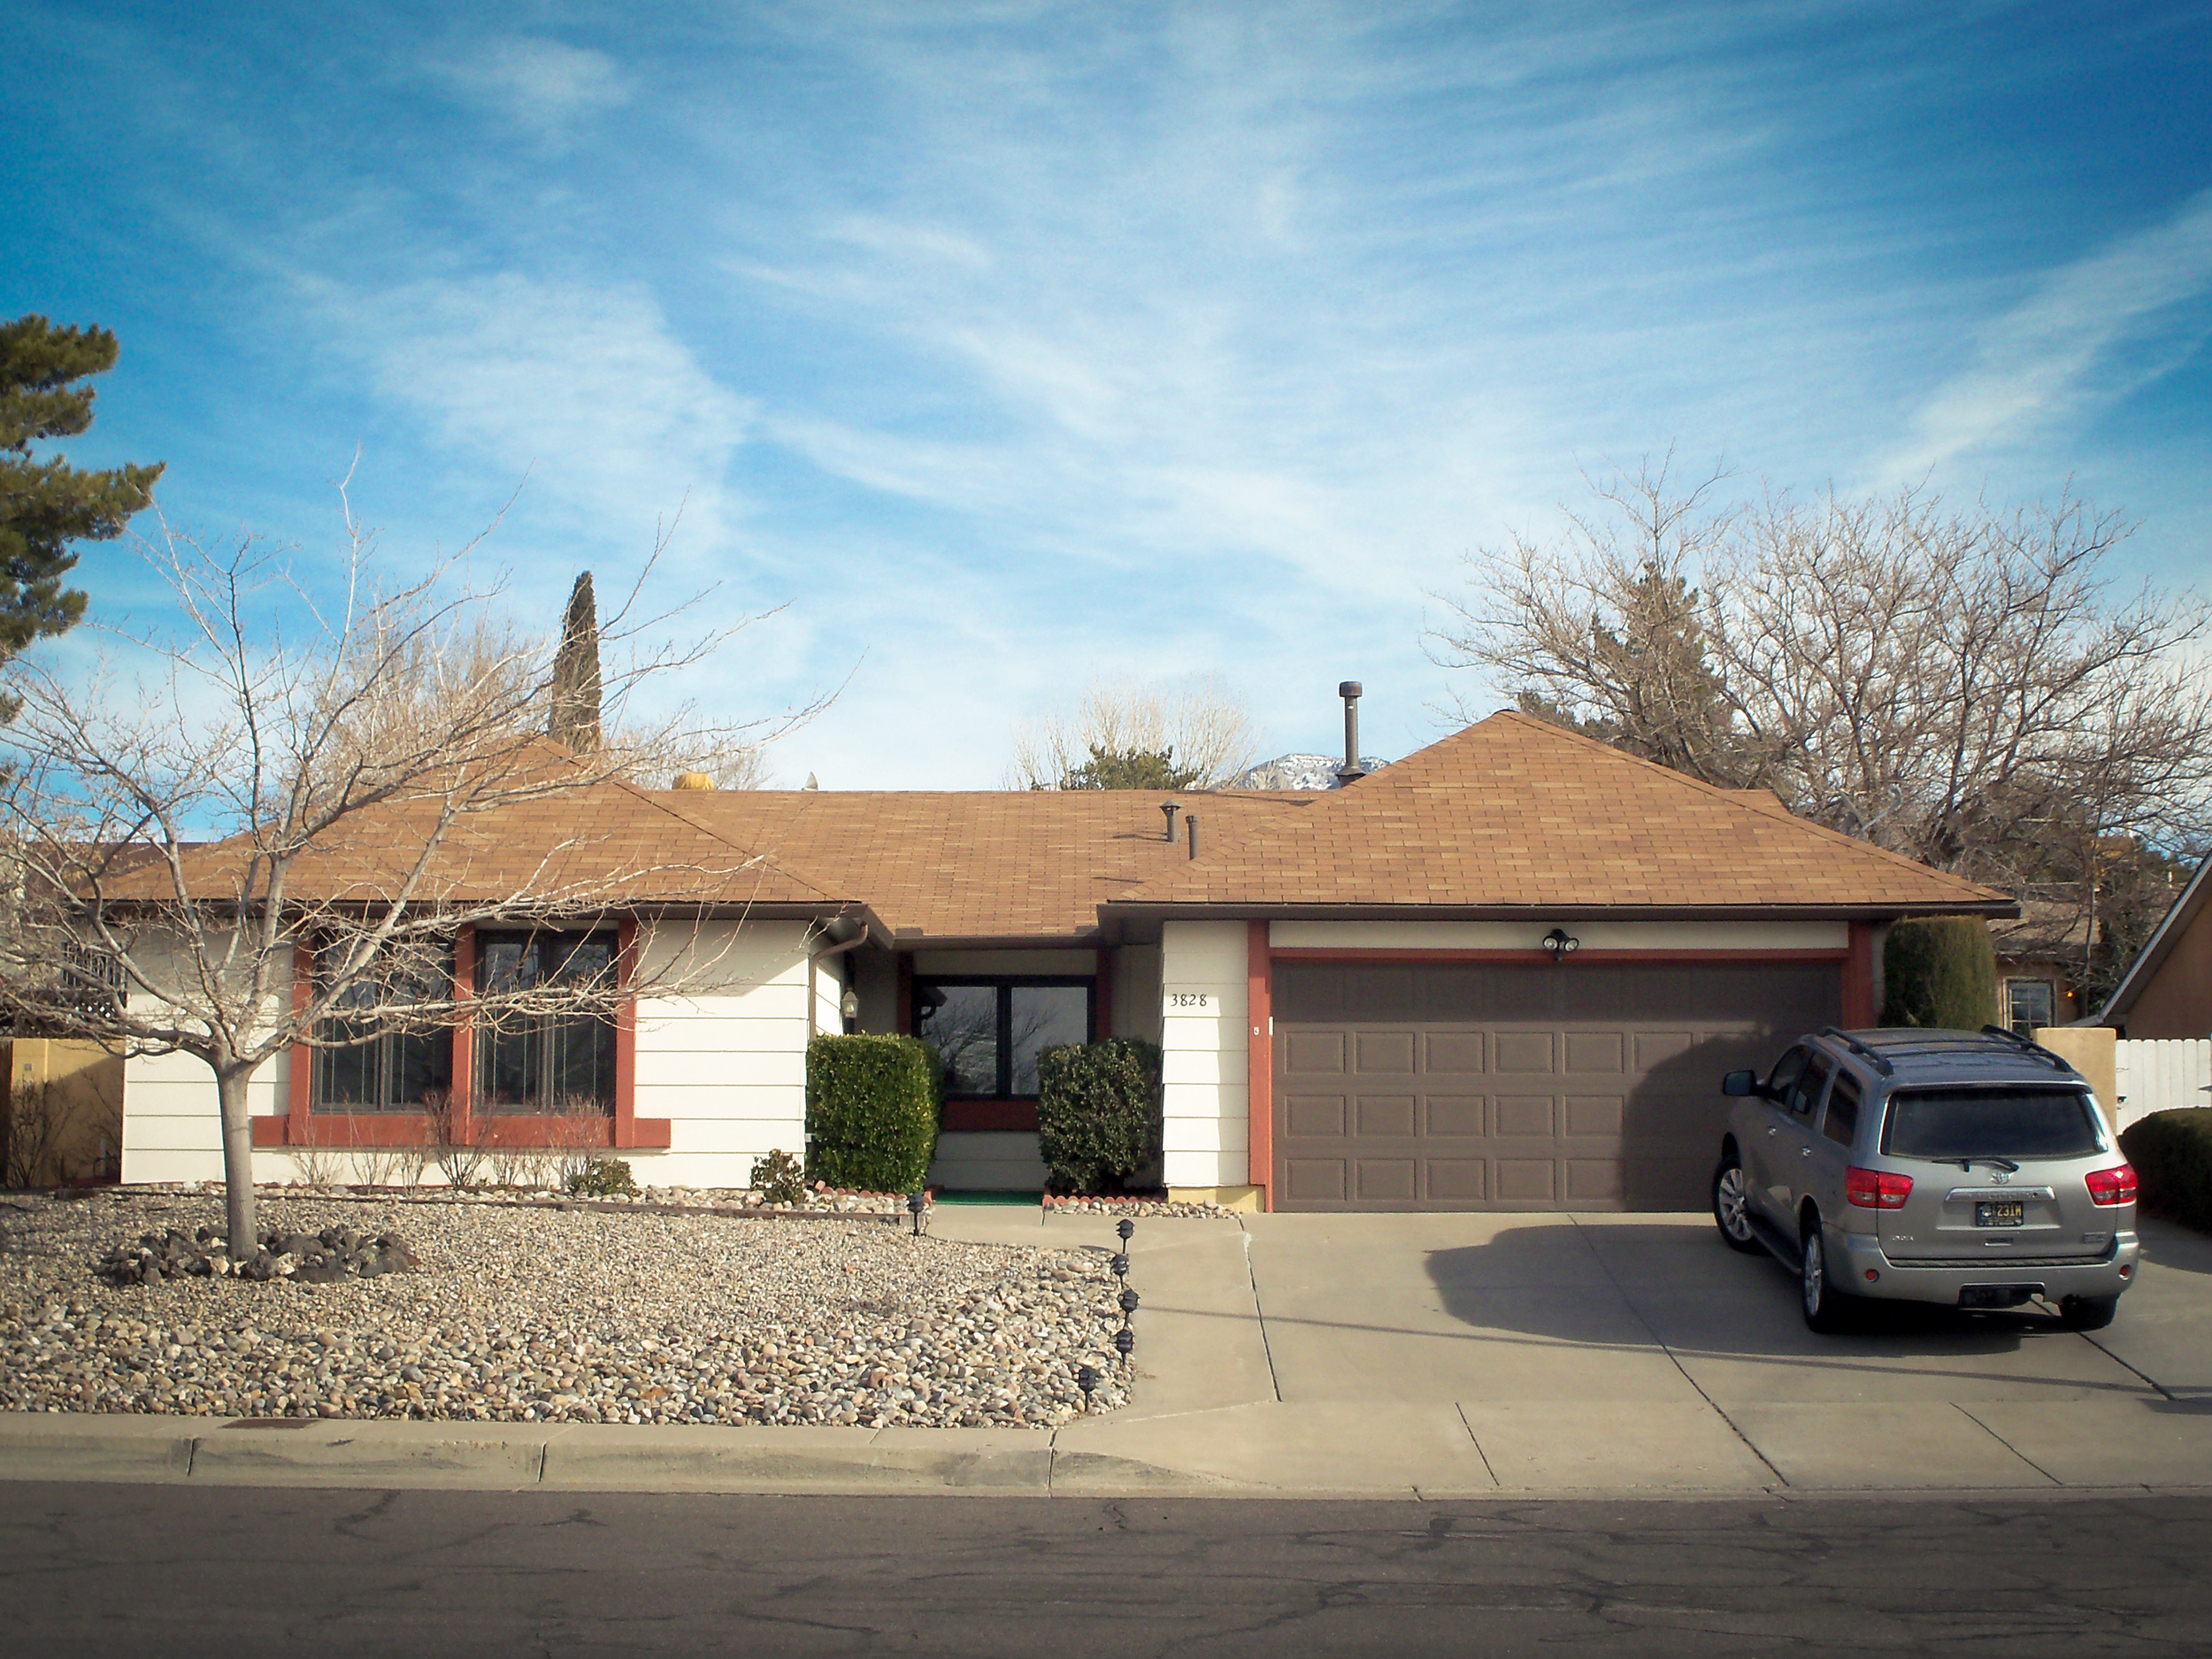 PHOTO CREDIT: The famous Breaking Bad house in Albuquerque actually belongs to the Padilla family. Photo is from  here  .